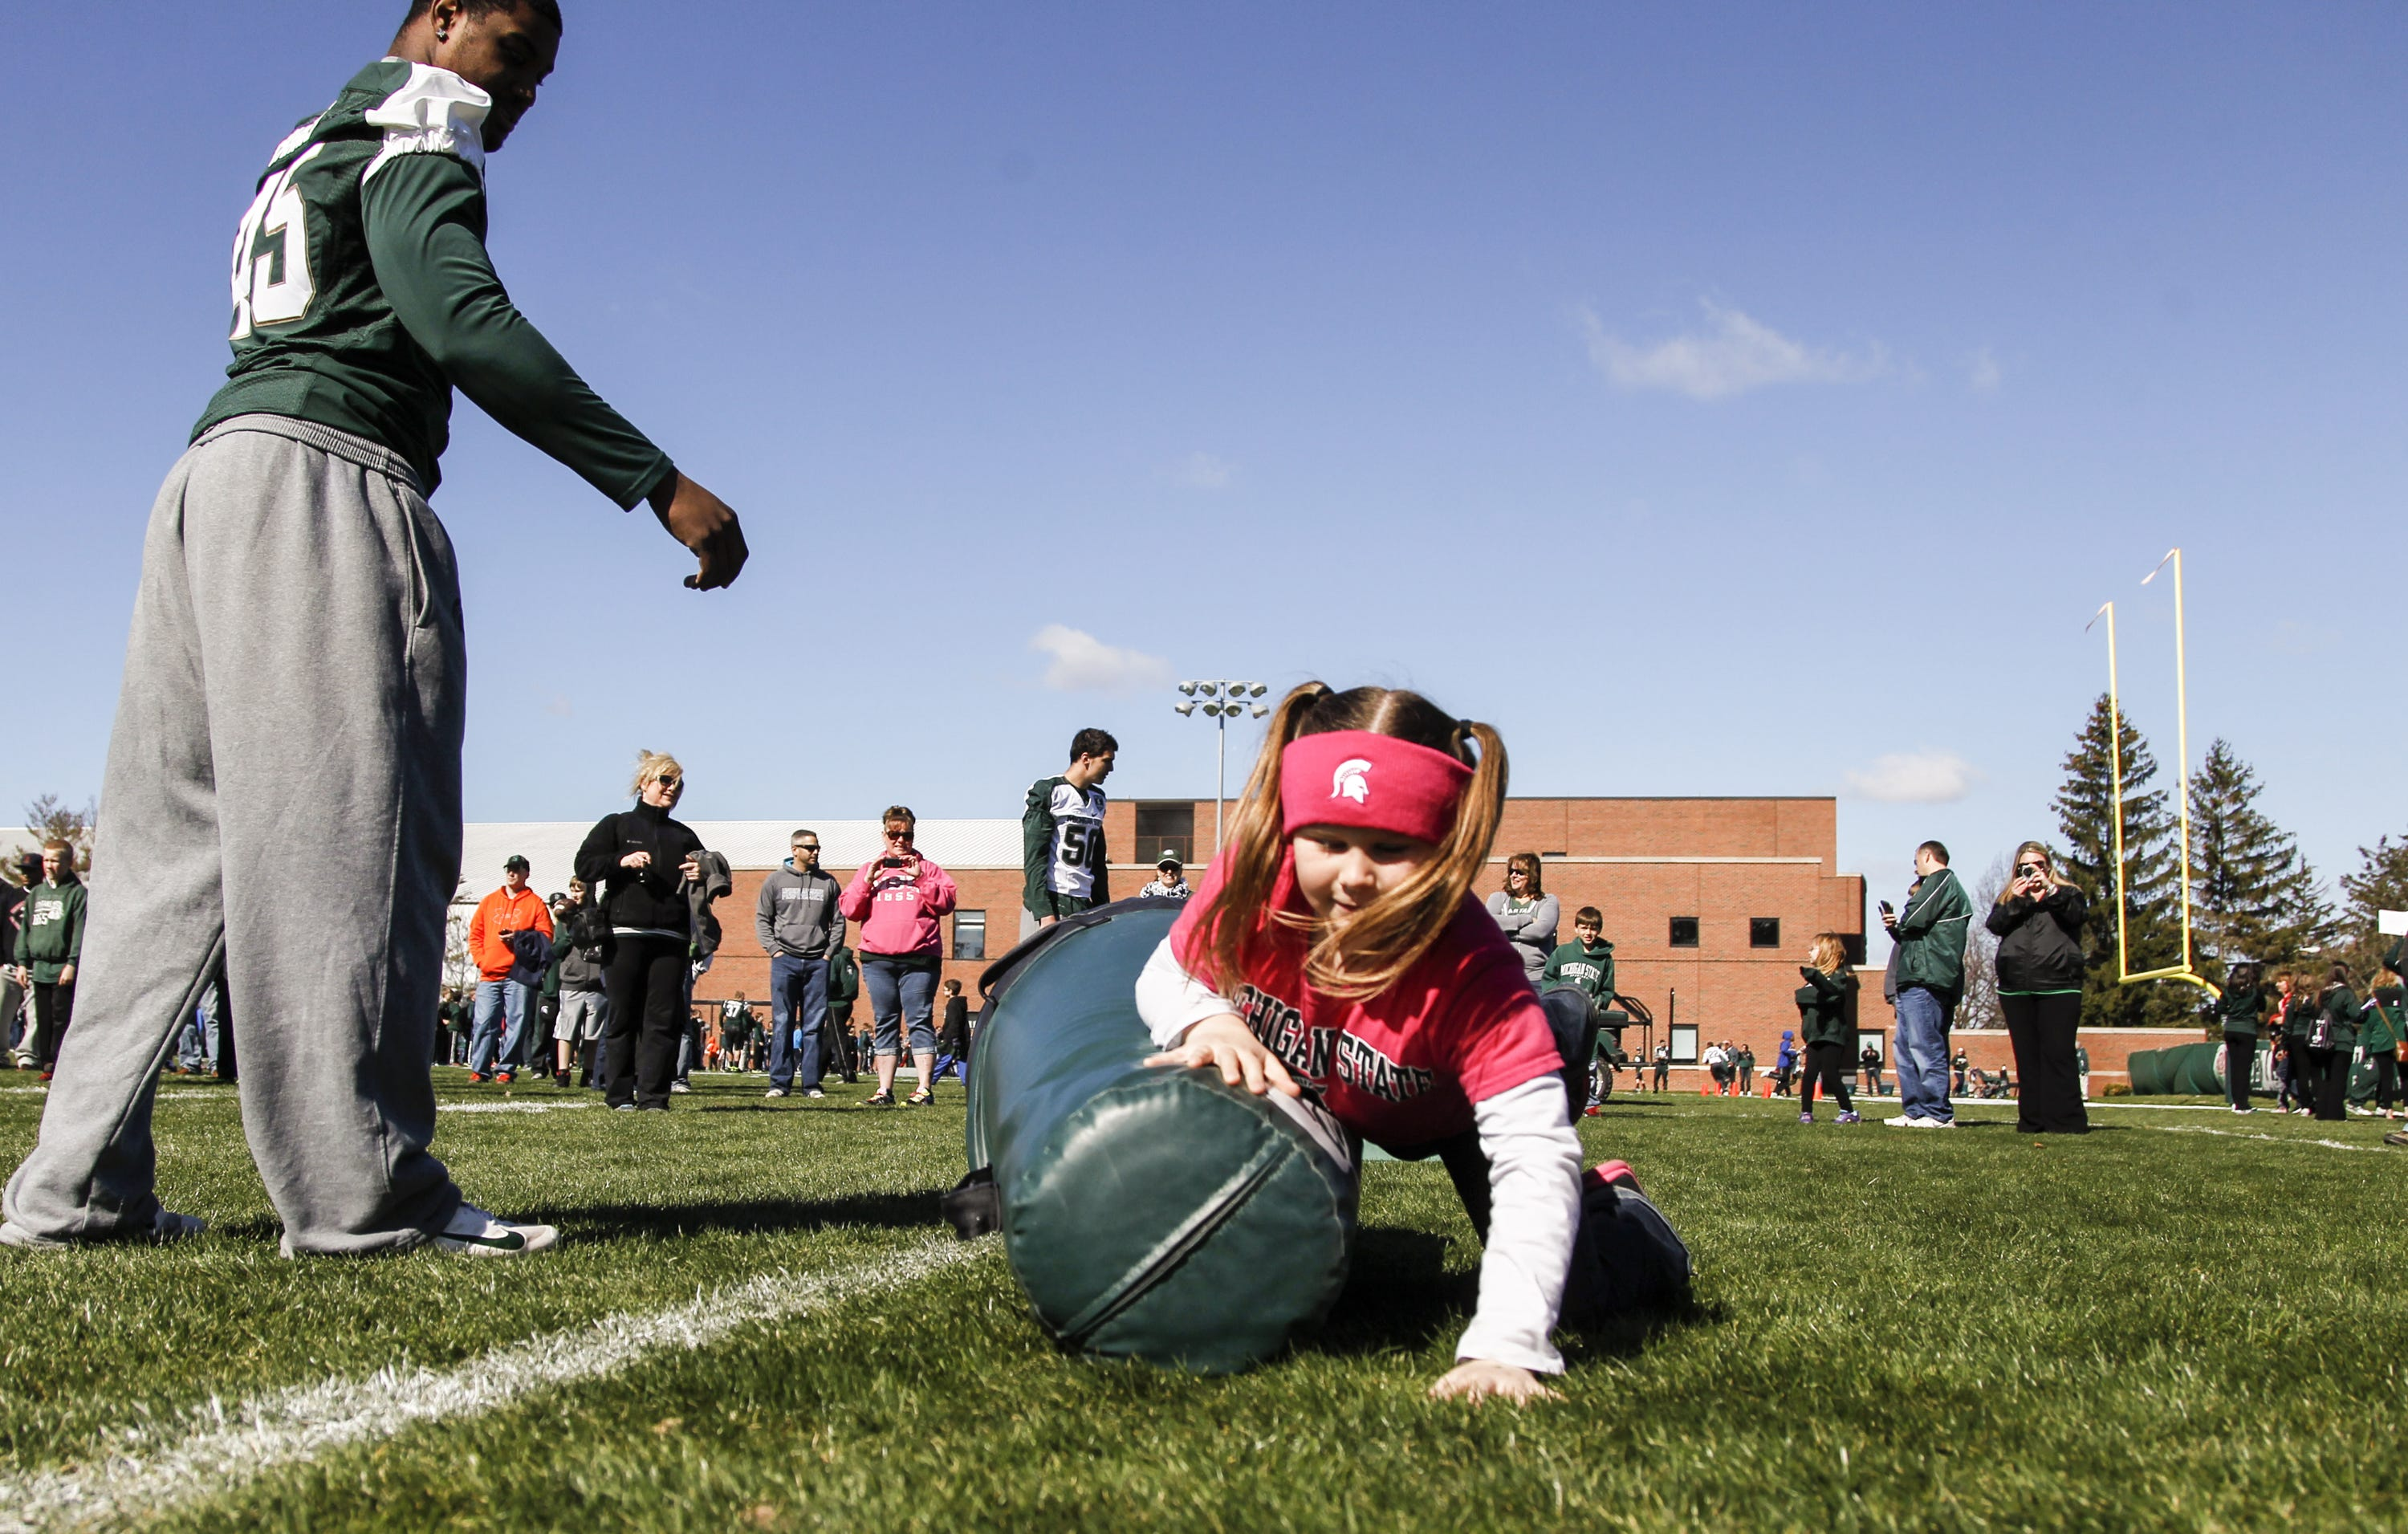 Natalie Edlmisten, of Elkhart, Indiana, participated in agility drills before the MSU football team's spring game in 2014. She was 8 at the time.